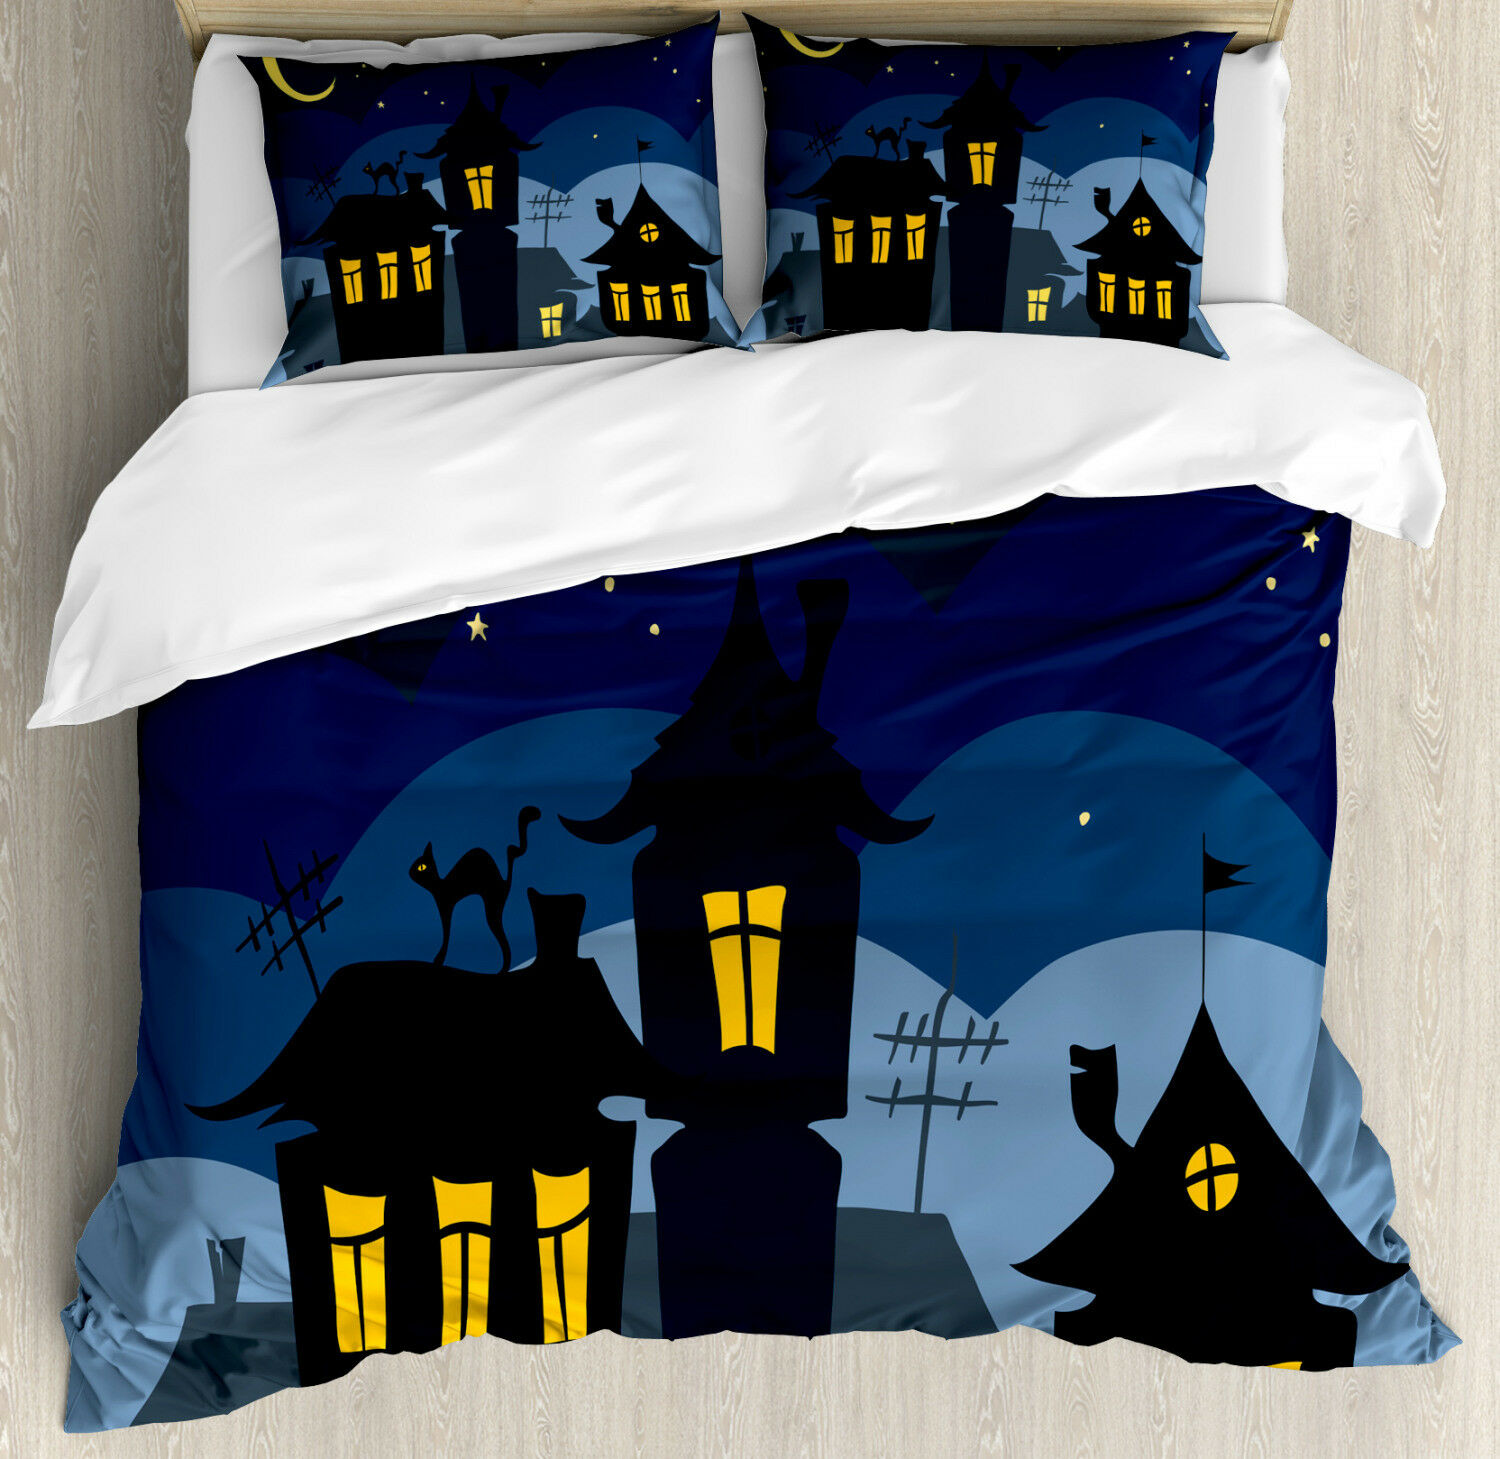 Halloween Duvet Cover Set with Pillow Shams Cartoon Town with Cat Print